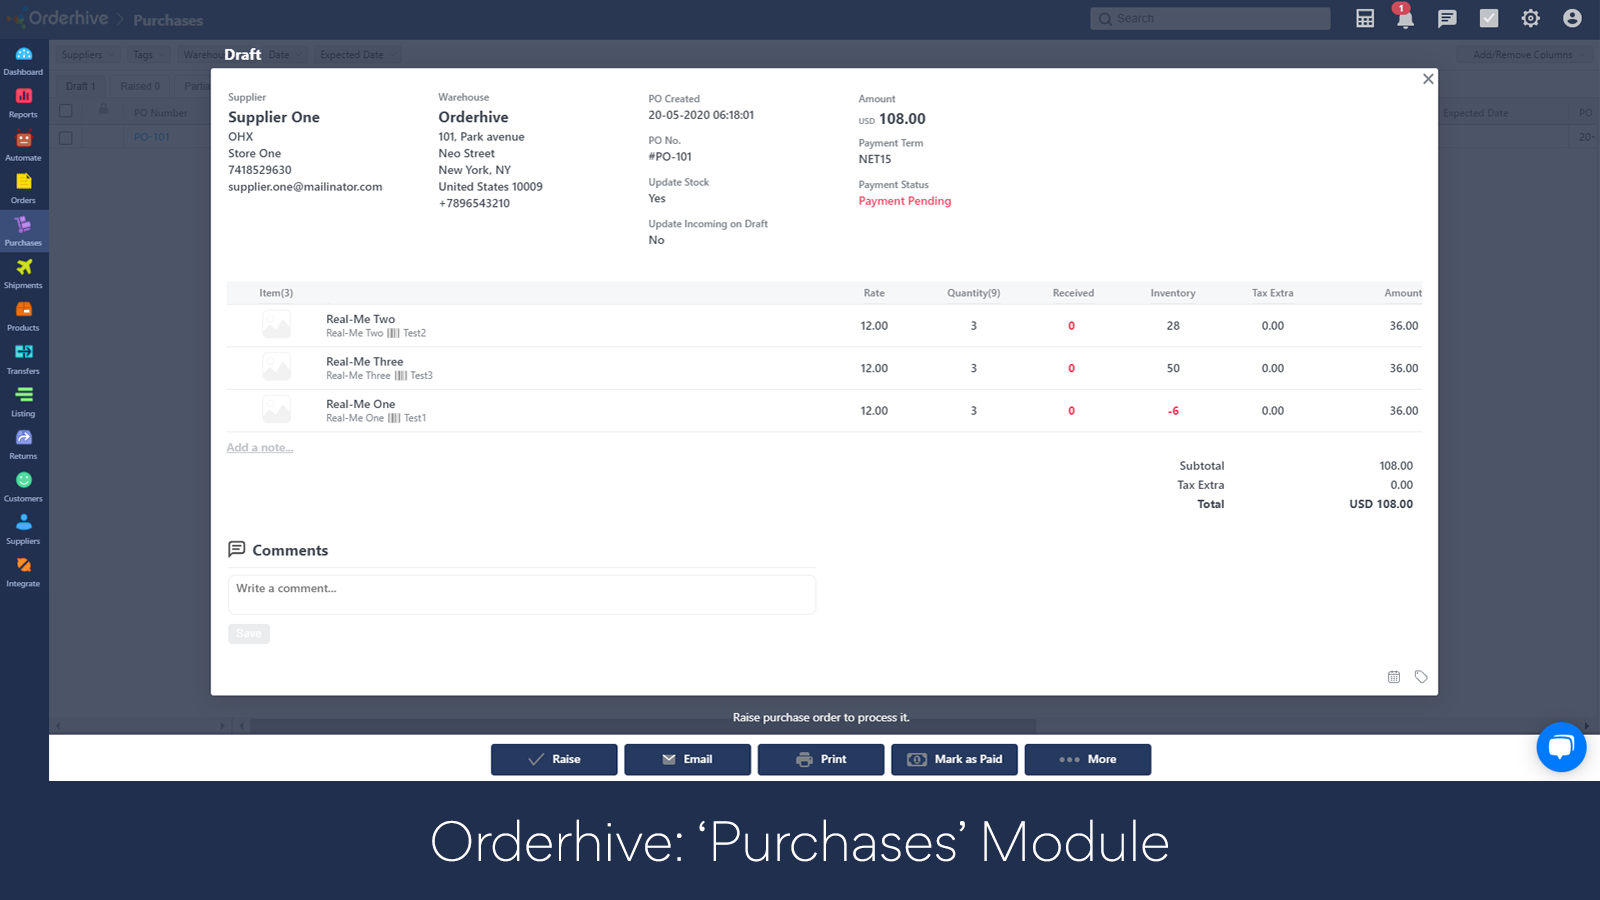 Purchase List Page